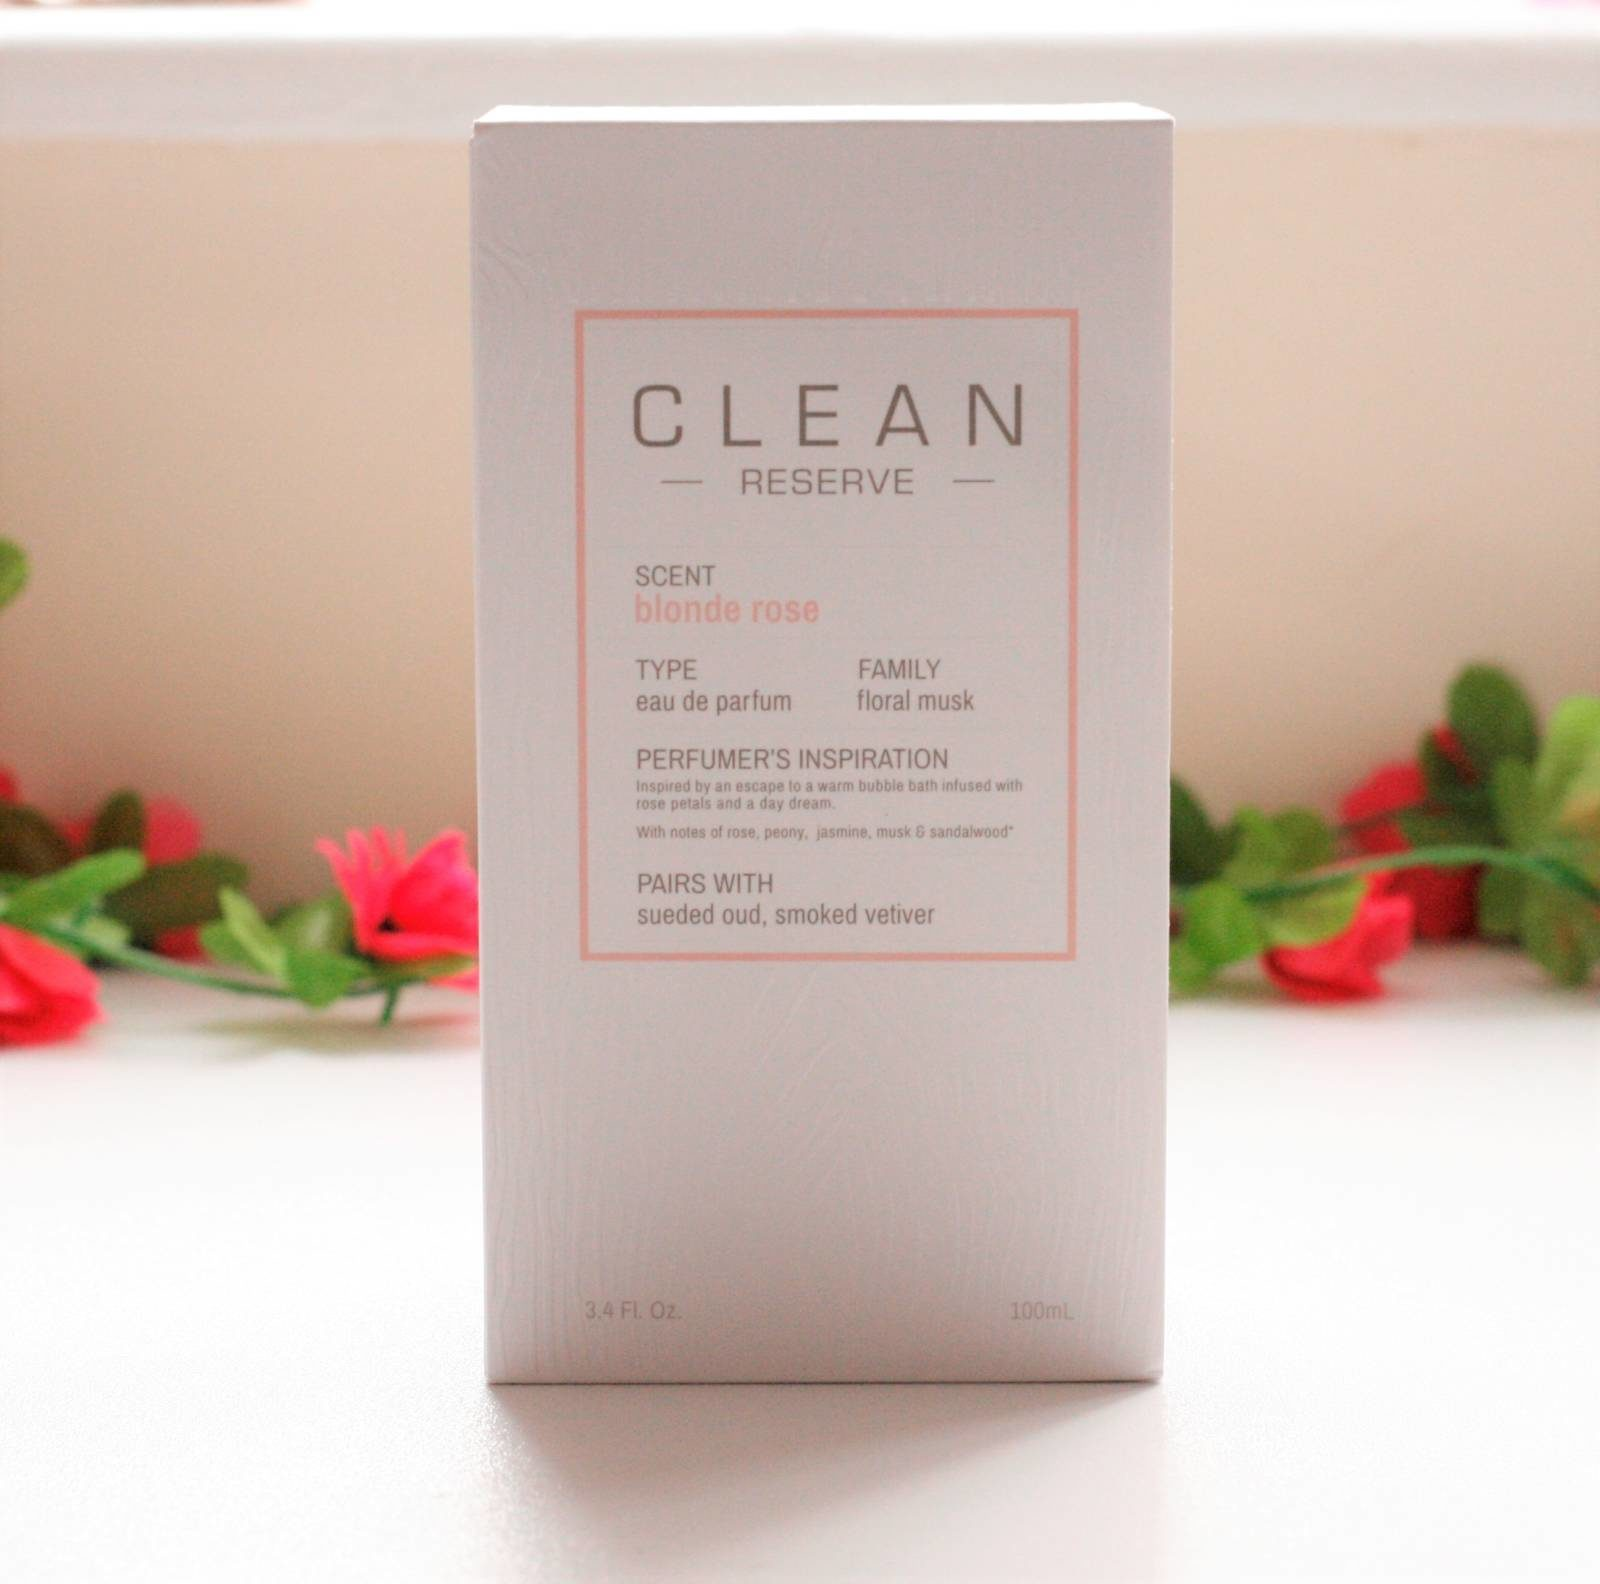 Clean Reserve Blonde Rose Review